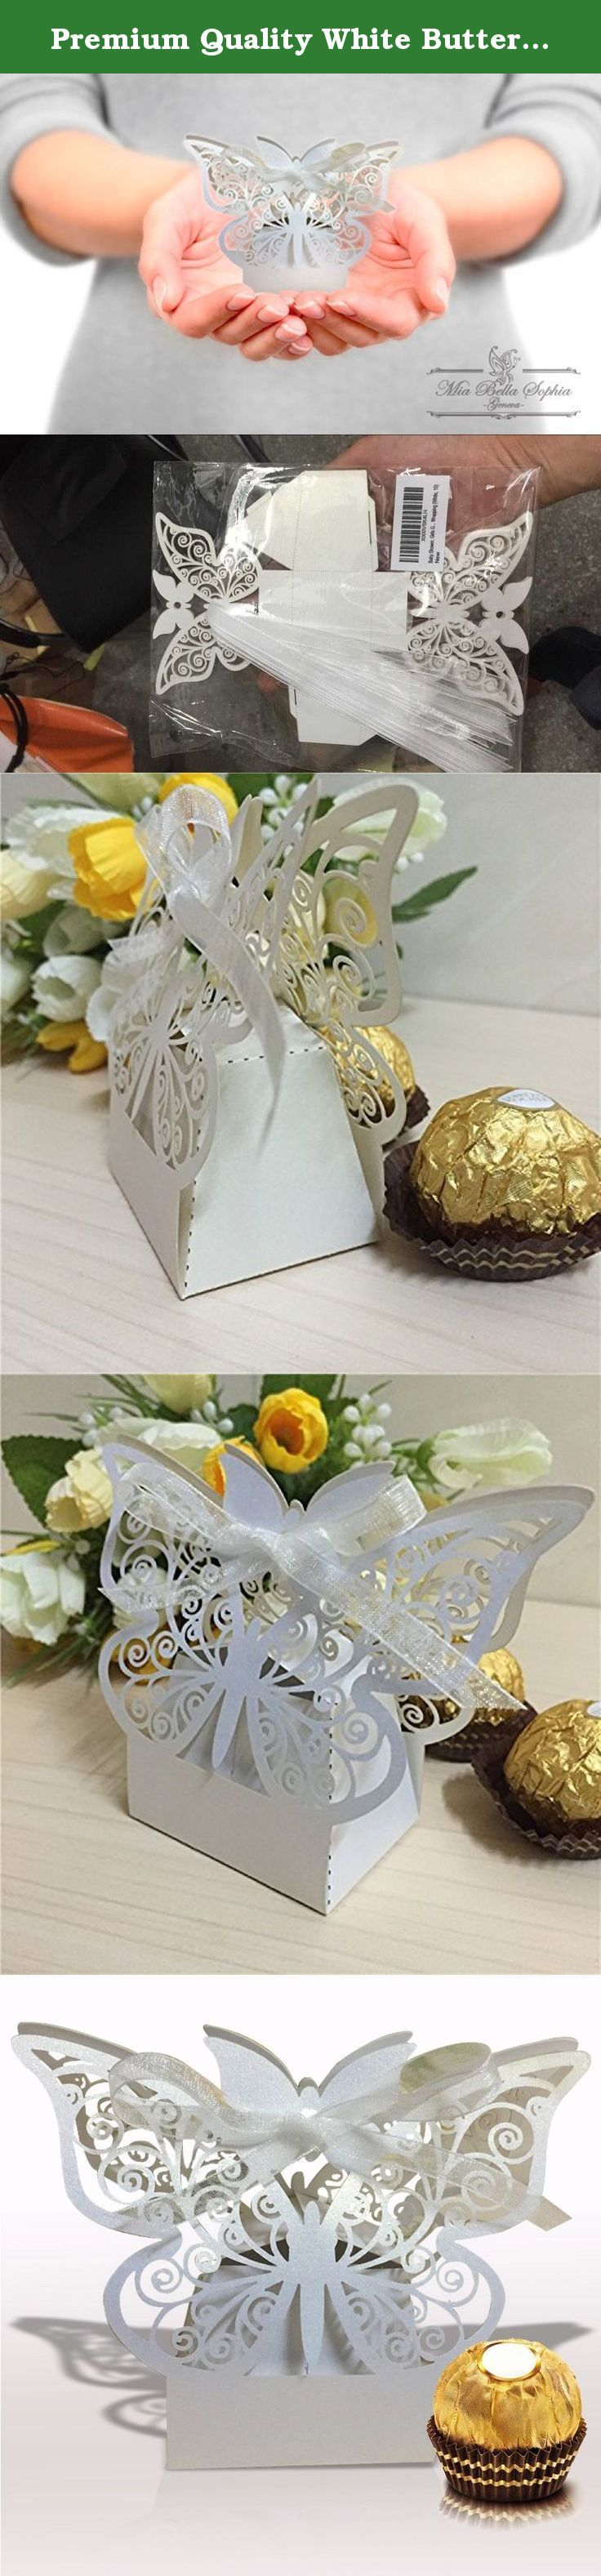 """Premium Quality White Butterfly Premise Candy Box, 10 pieces, SMALL (2.1x1.7x1.6"""") for an Elegant Presentation for Tea parties, bridal or wedding shower, wedding favor, girls birthdays and Christmas. ROCK-SOLID 90 DAY MONEY BACK GUARANTEE You'll love MiaBelllaSophia's gift boxes or your money back, giving you every reason to Add them to Cart before they return to Back Order Status Now ."""